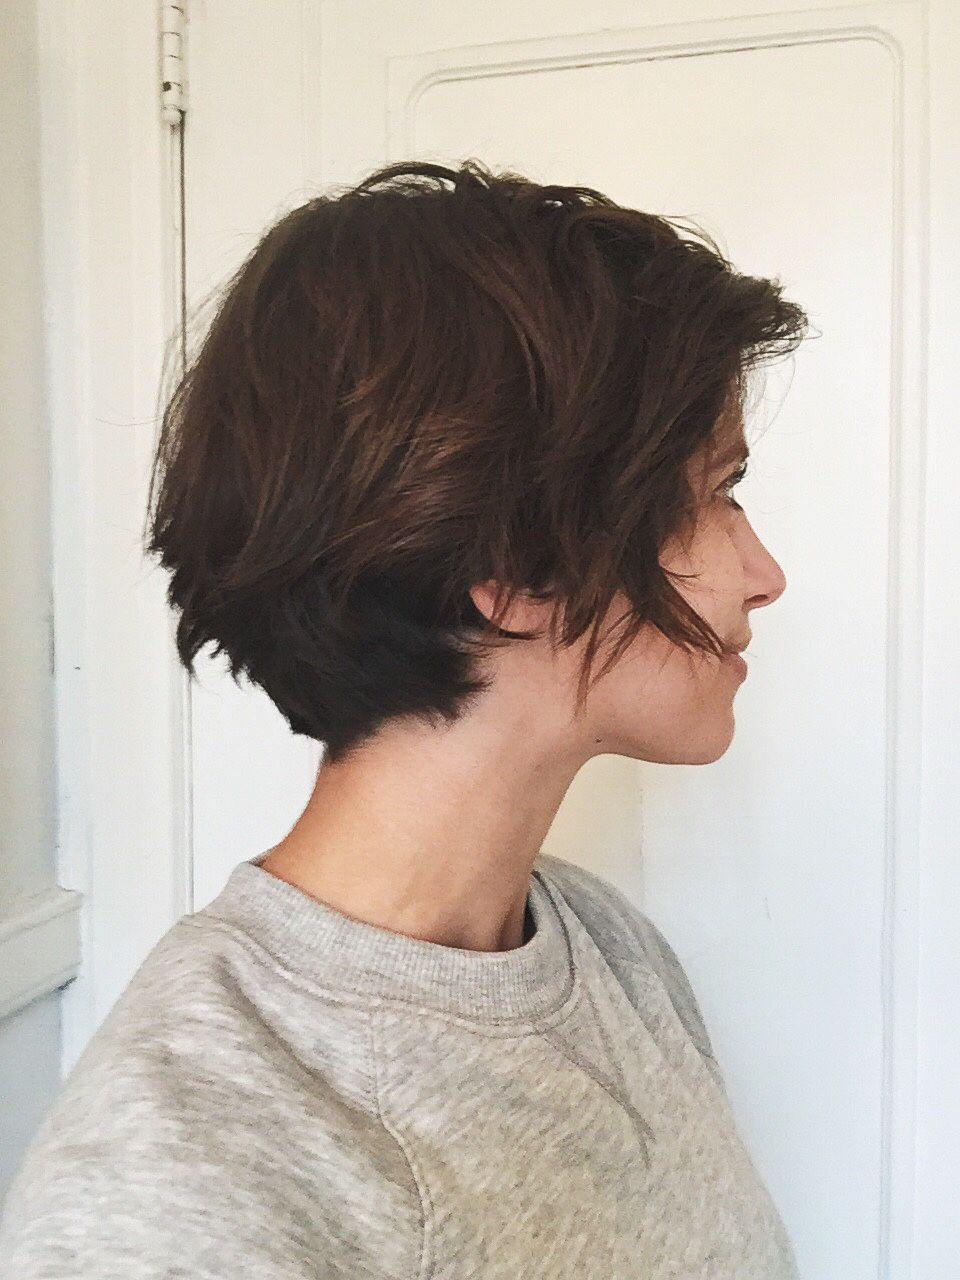 14 Gorgeous Asian Pixie Haircuts that Easy to Maintain 54d55f577cf54824108c89f9a2ab4da6